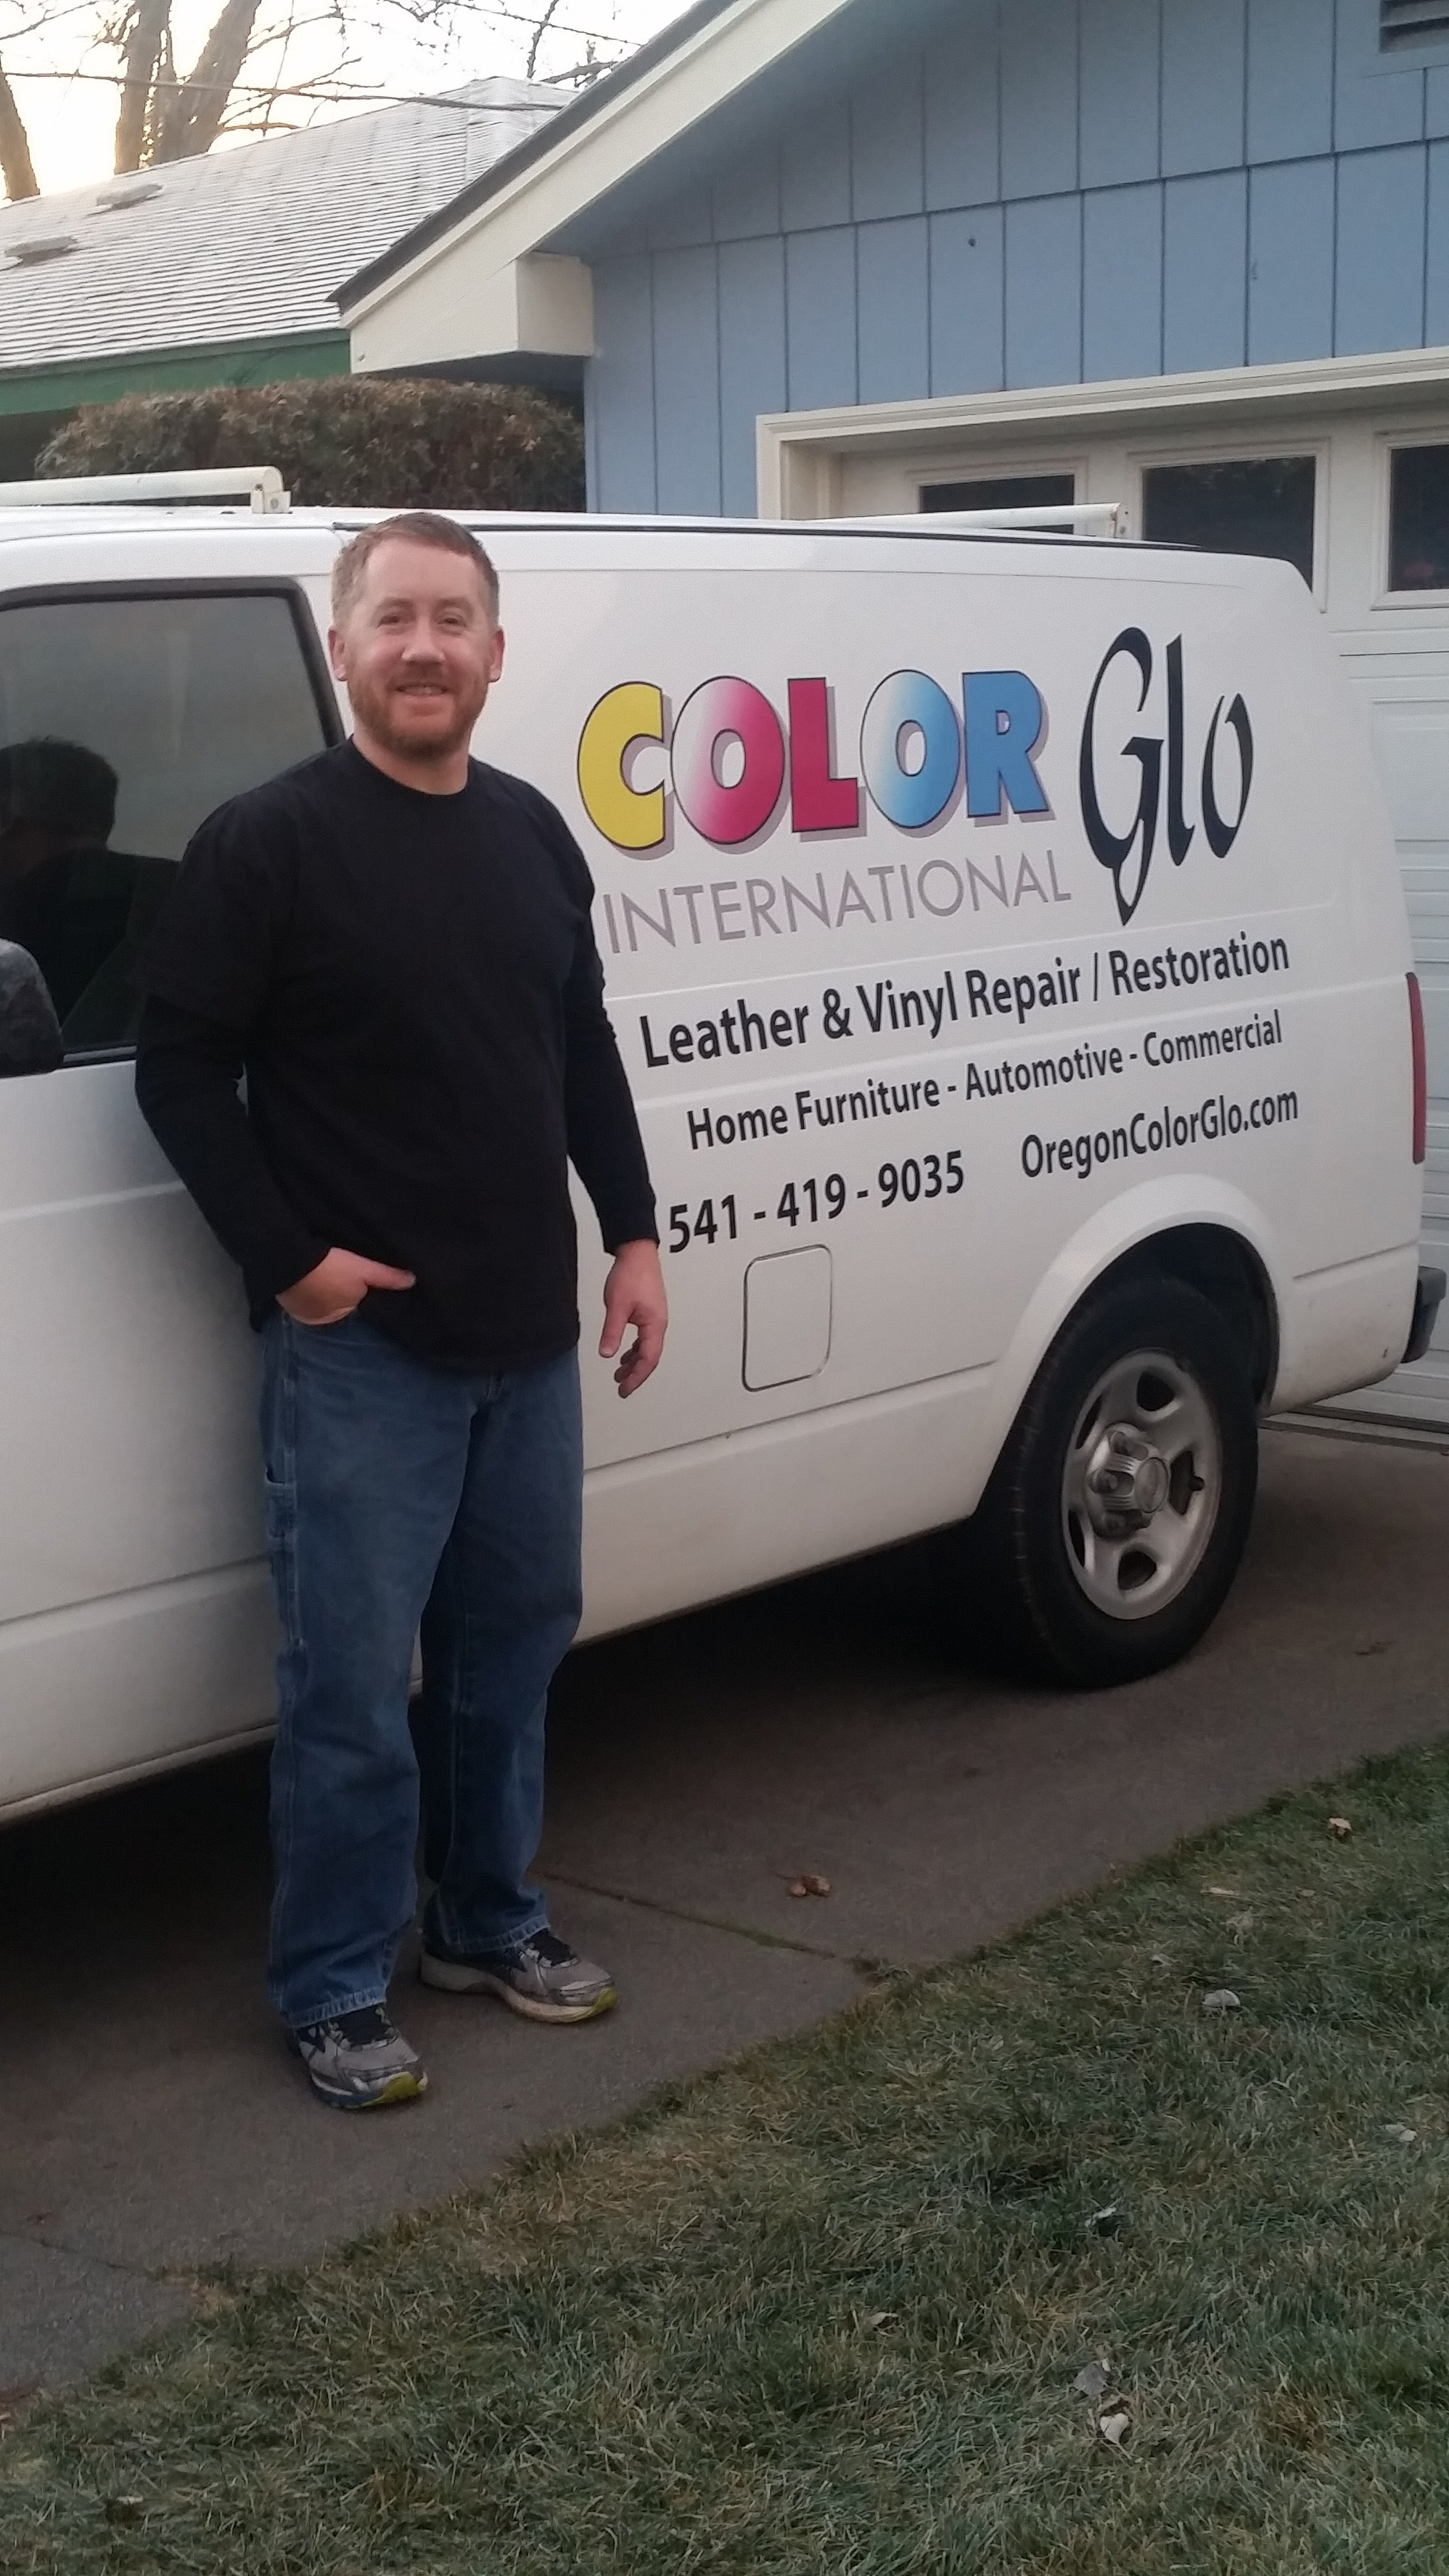 Adam Sears - Servicing Deschutes, Jefferson and Crook counties in the state of Oregon.www.oregoncolorglo.comPhone: 541-419-9035